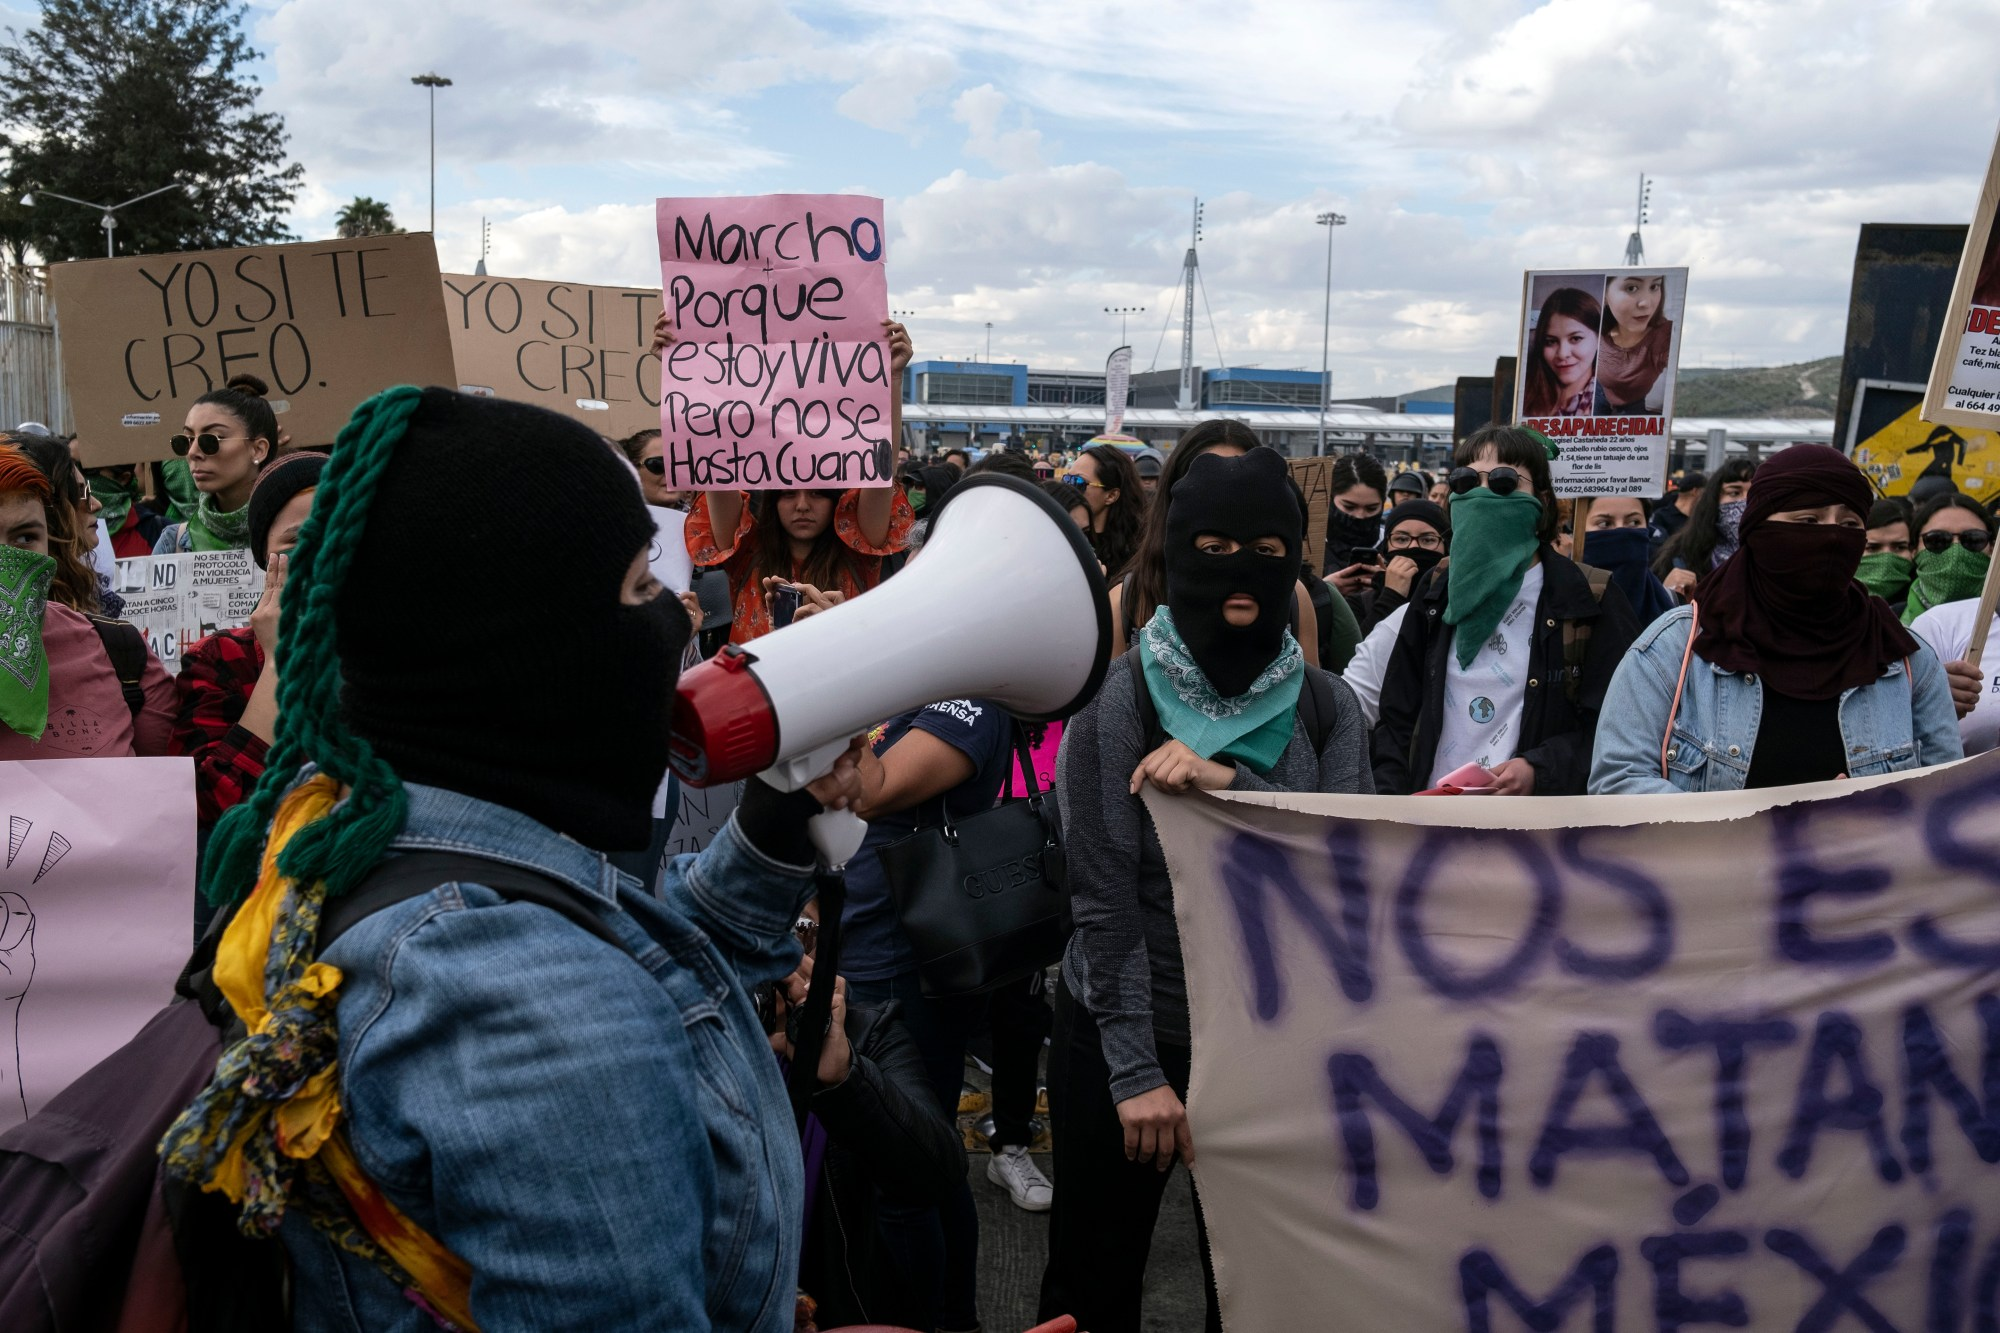 Women protest gender violence at the San Ysidro port of entry on the US/Mexico border on February 21, 2020, Tijuana, Baja California state, Mexico. Recent femicide cases in Mexico haveshocked the country, mobilizing women into to protesting gender violence. (GUILLERMO ARIAS/AFP via Getty Images)